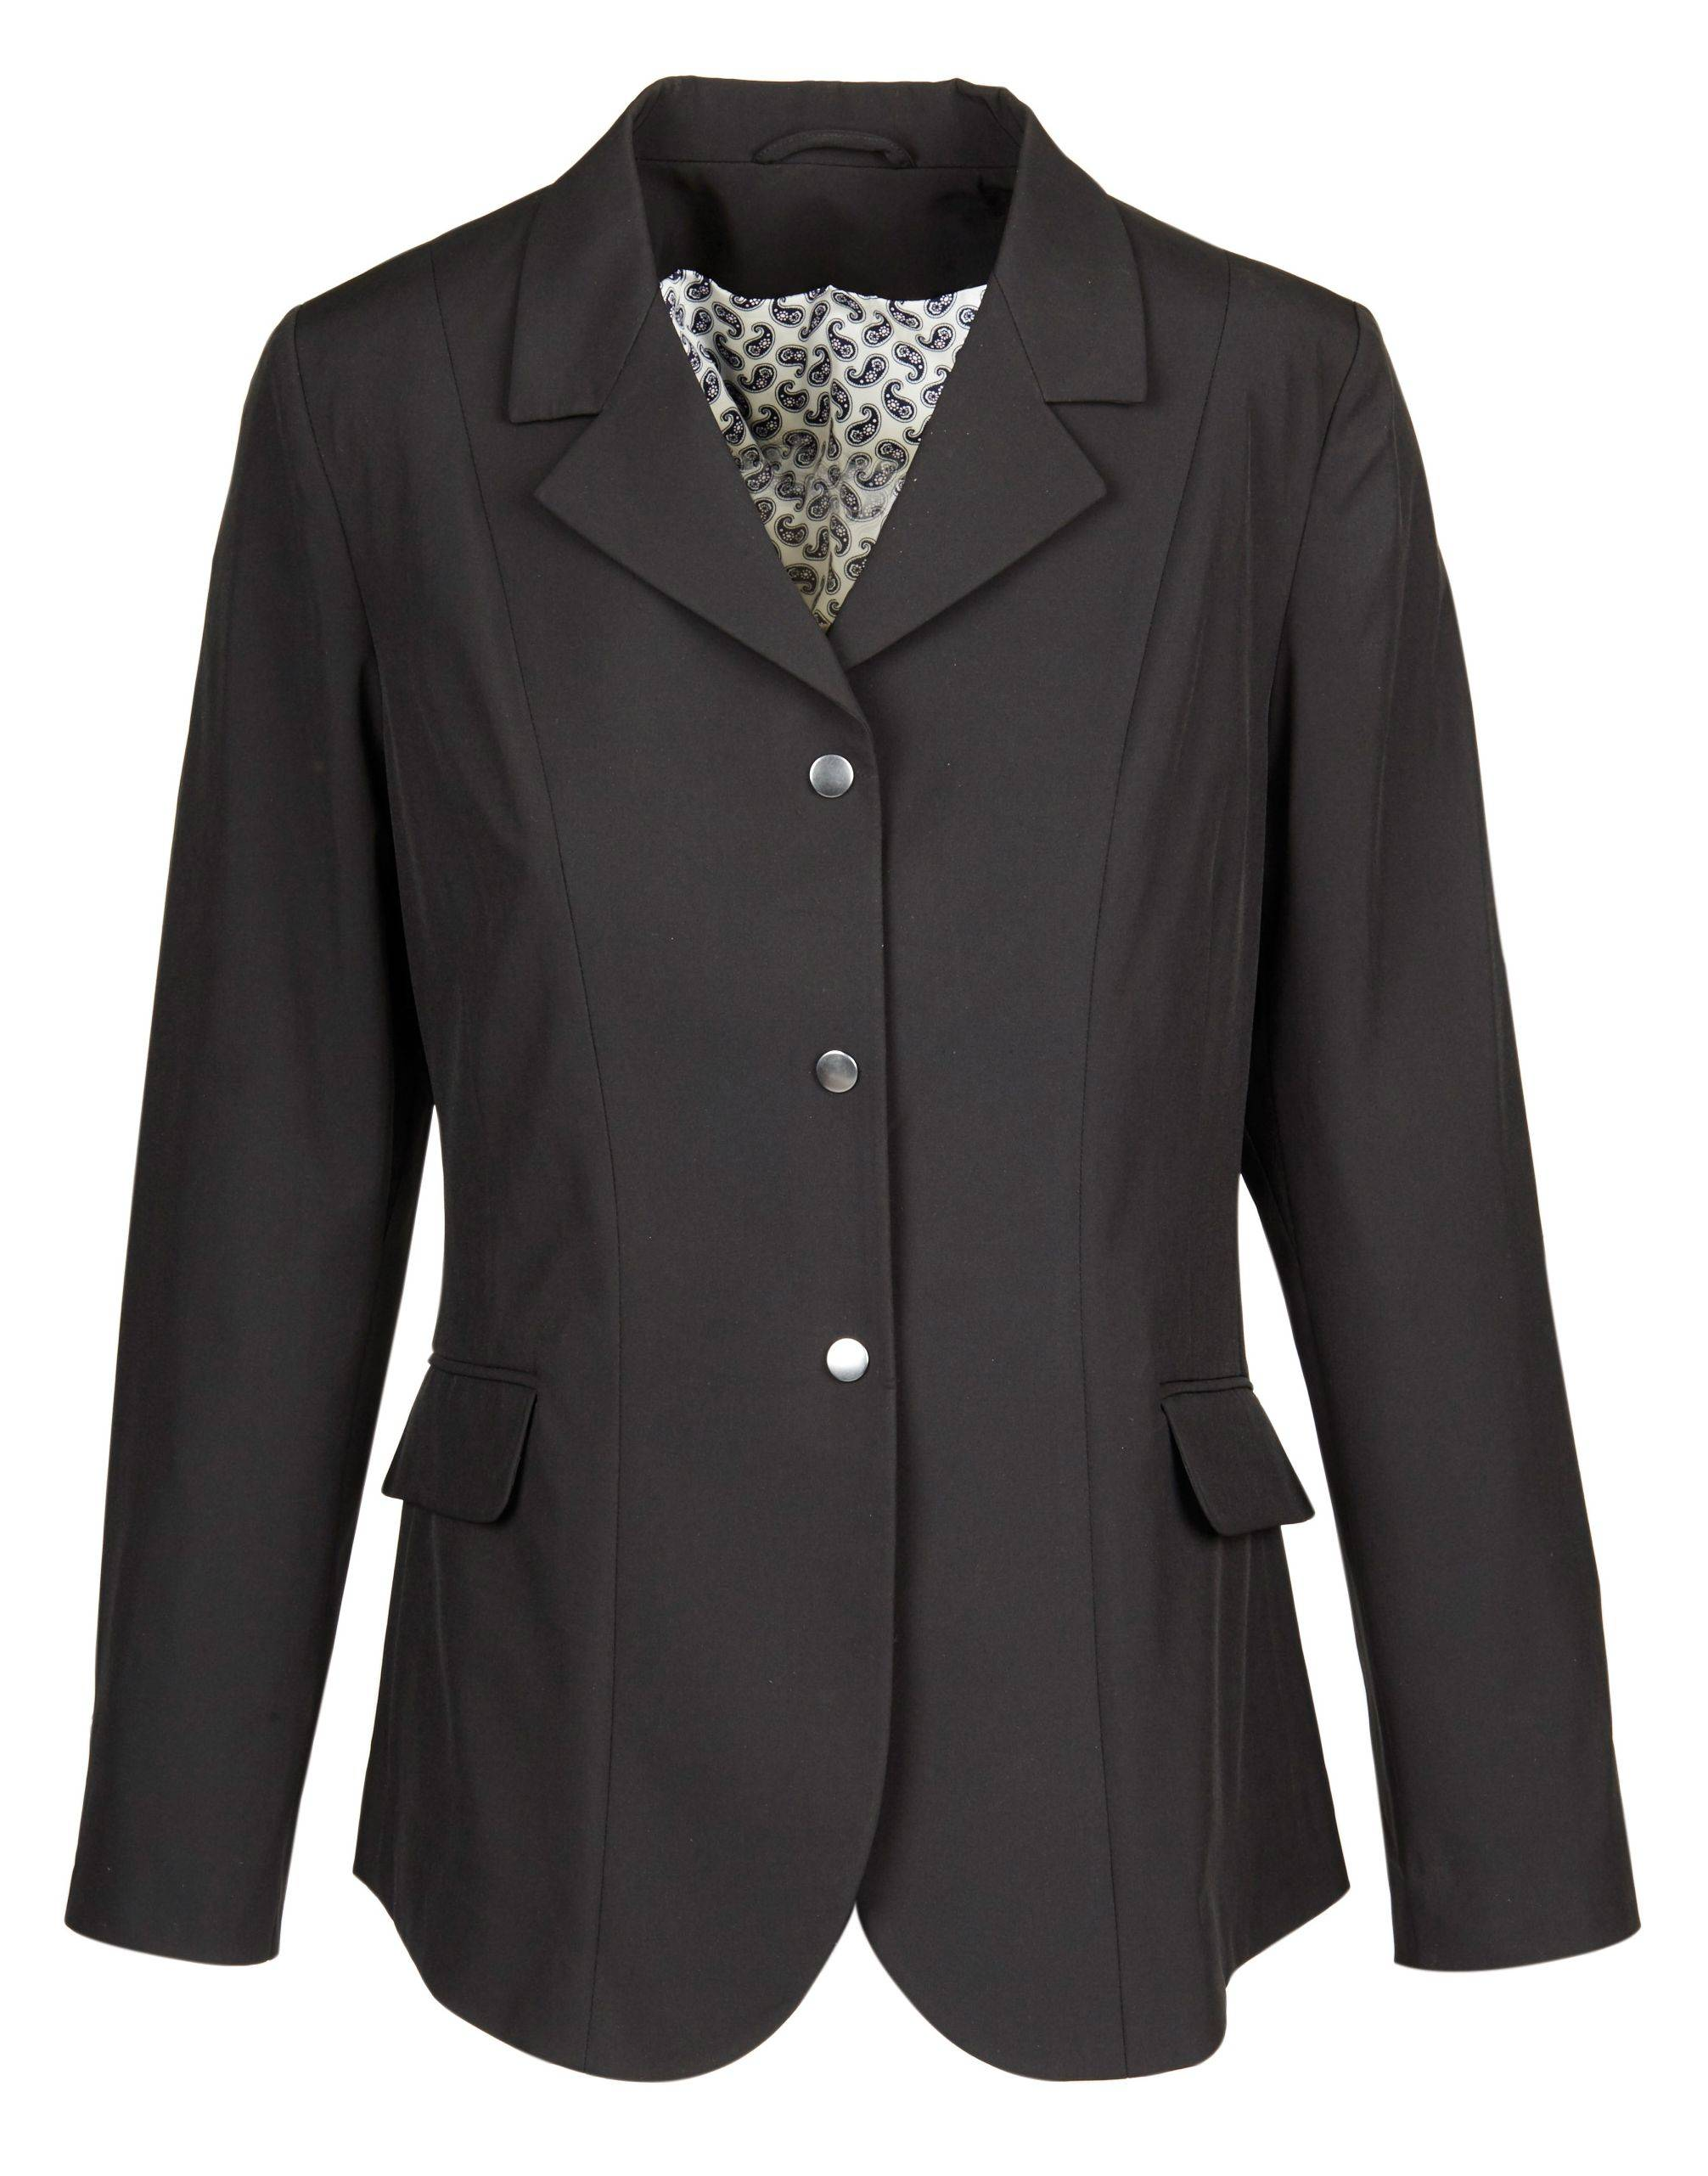 Dublin Bristol Soft Shell Show Coat - Ladies